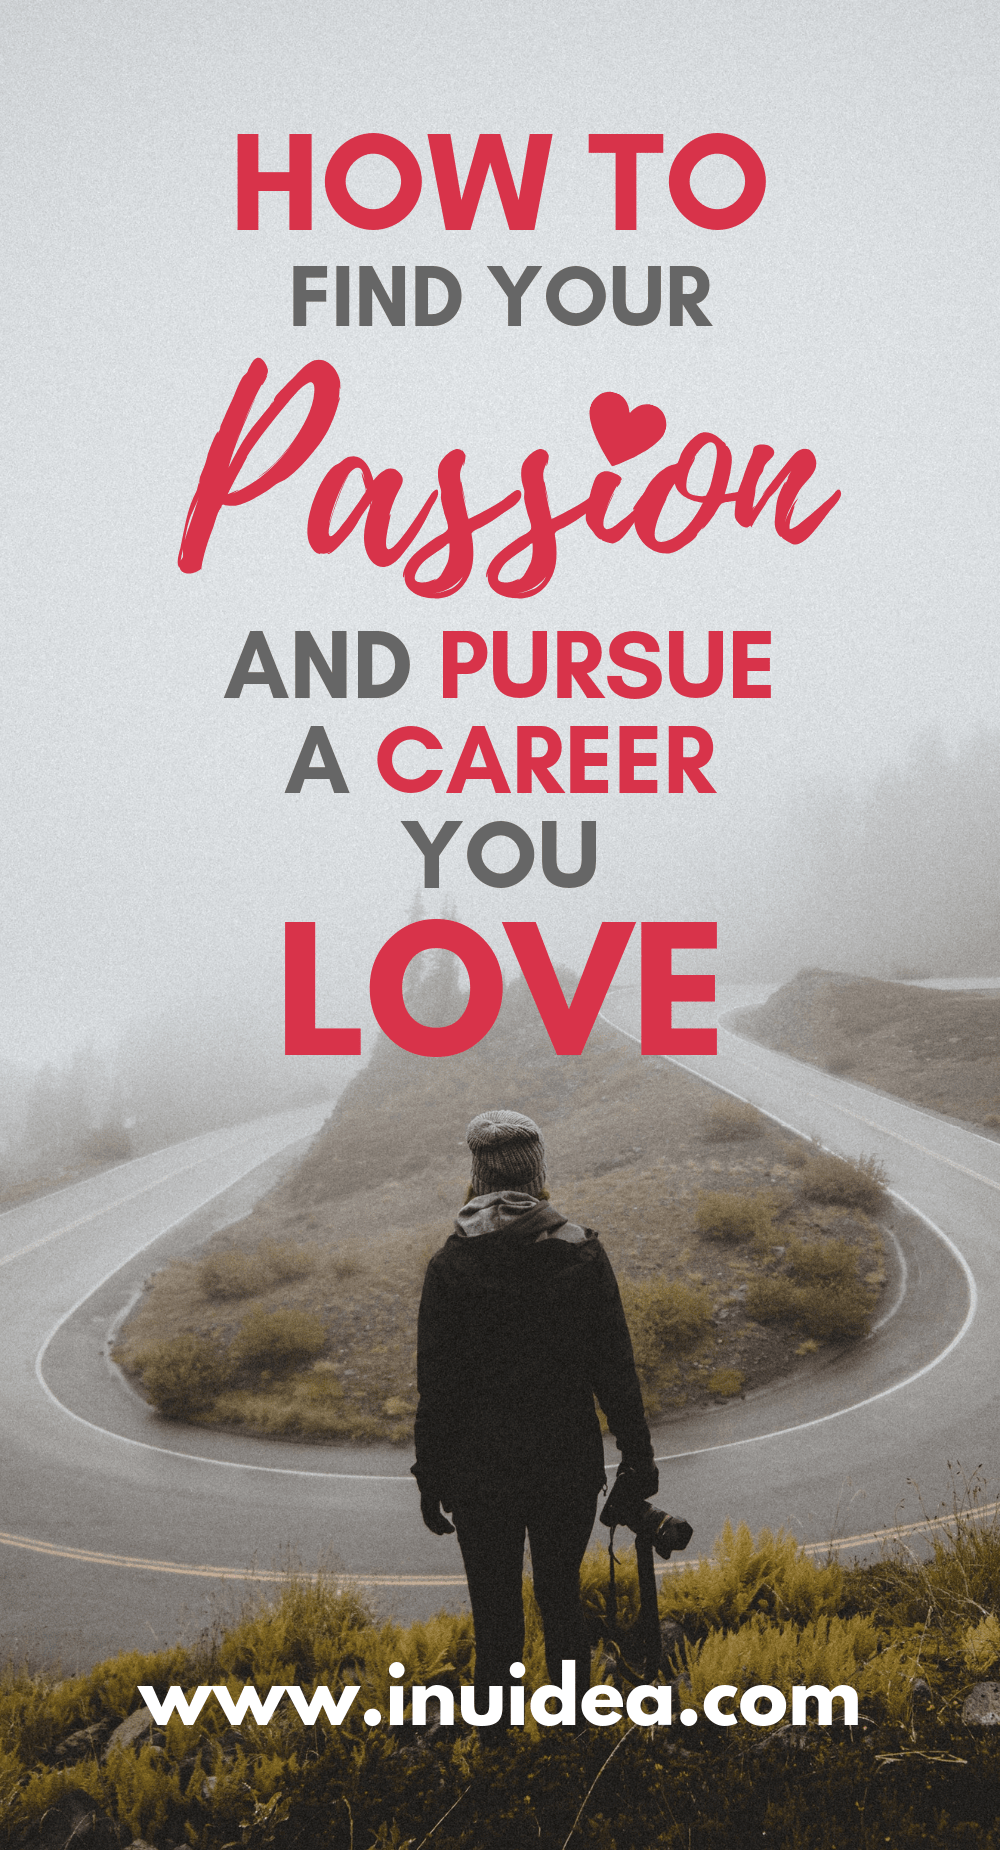 How to find your passion and pursue a career you love